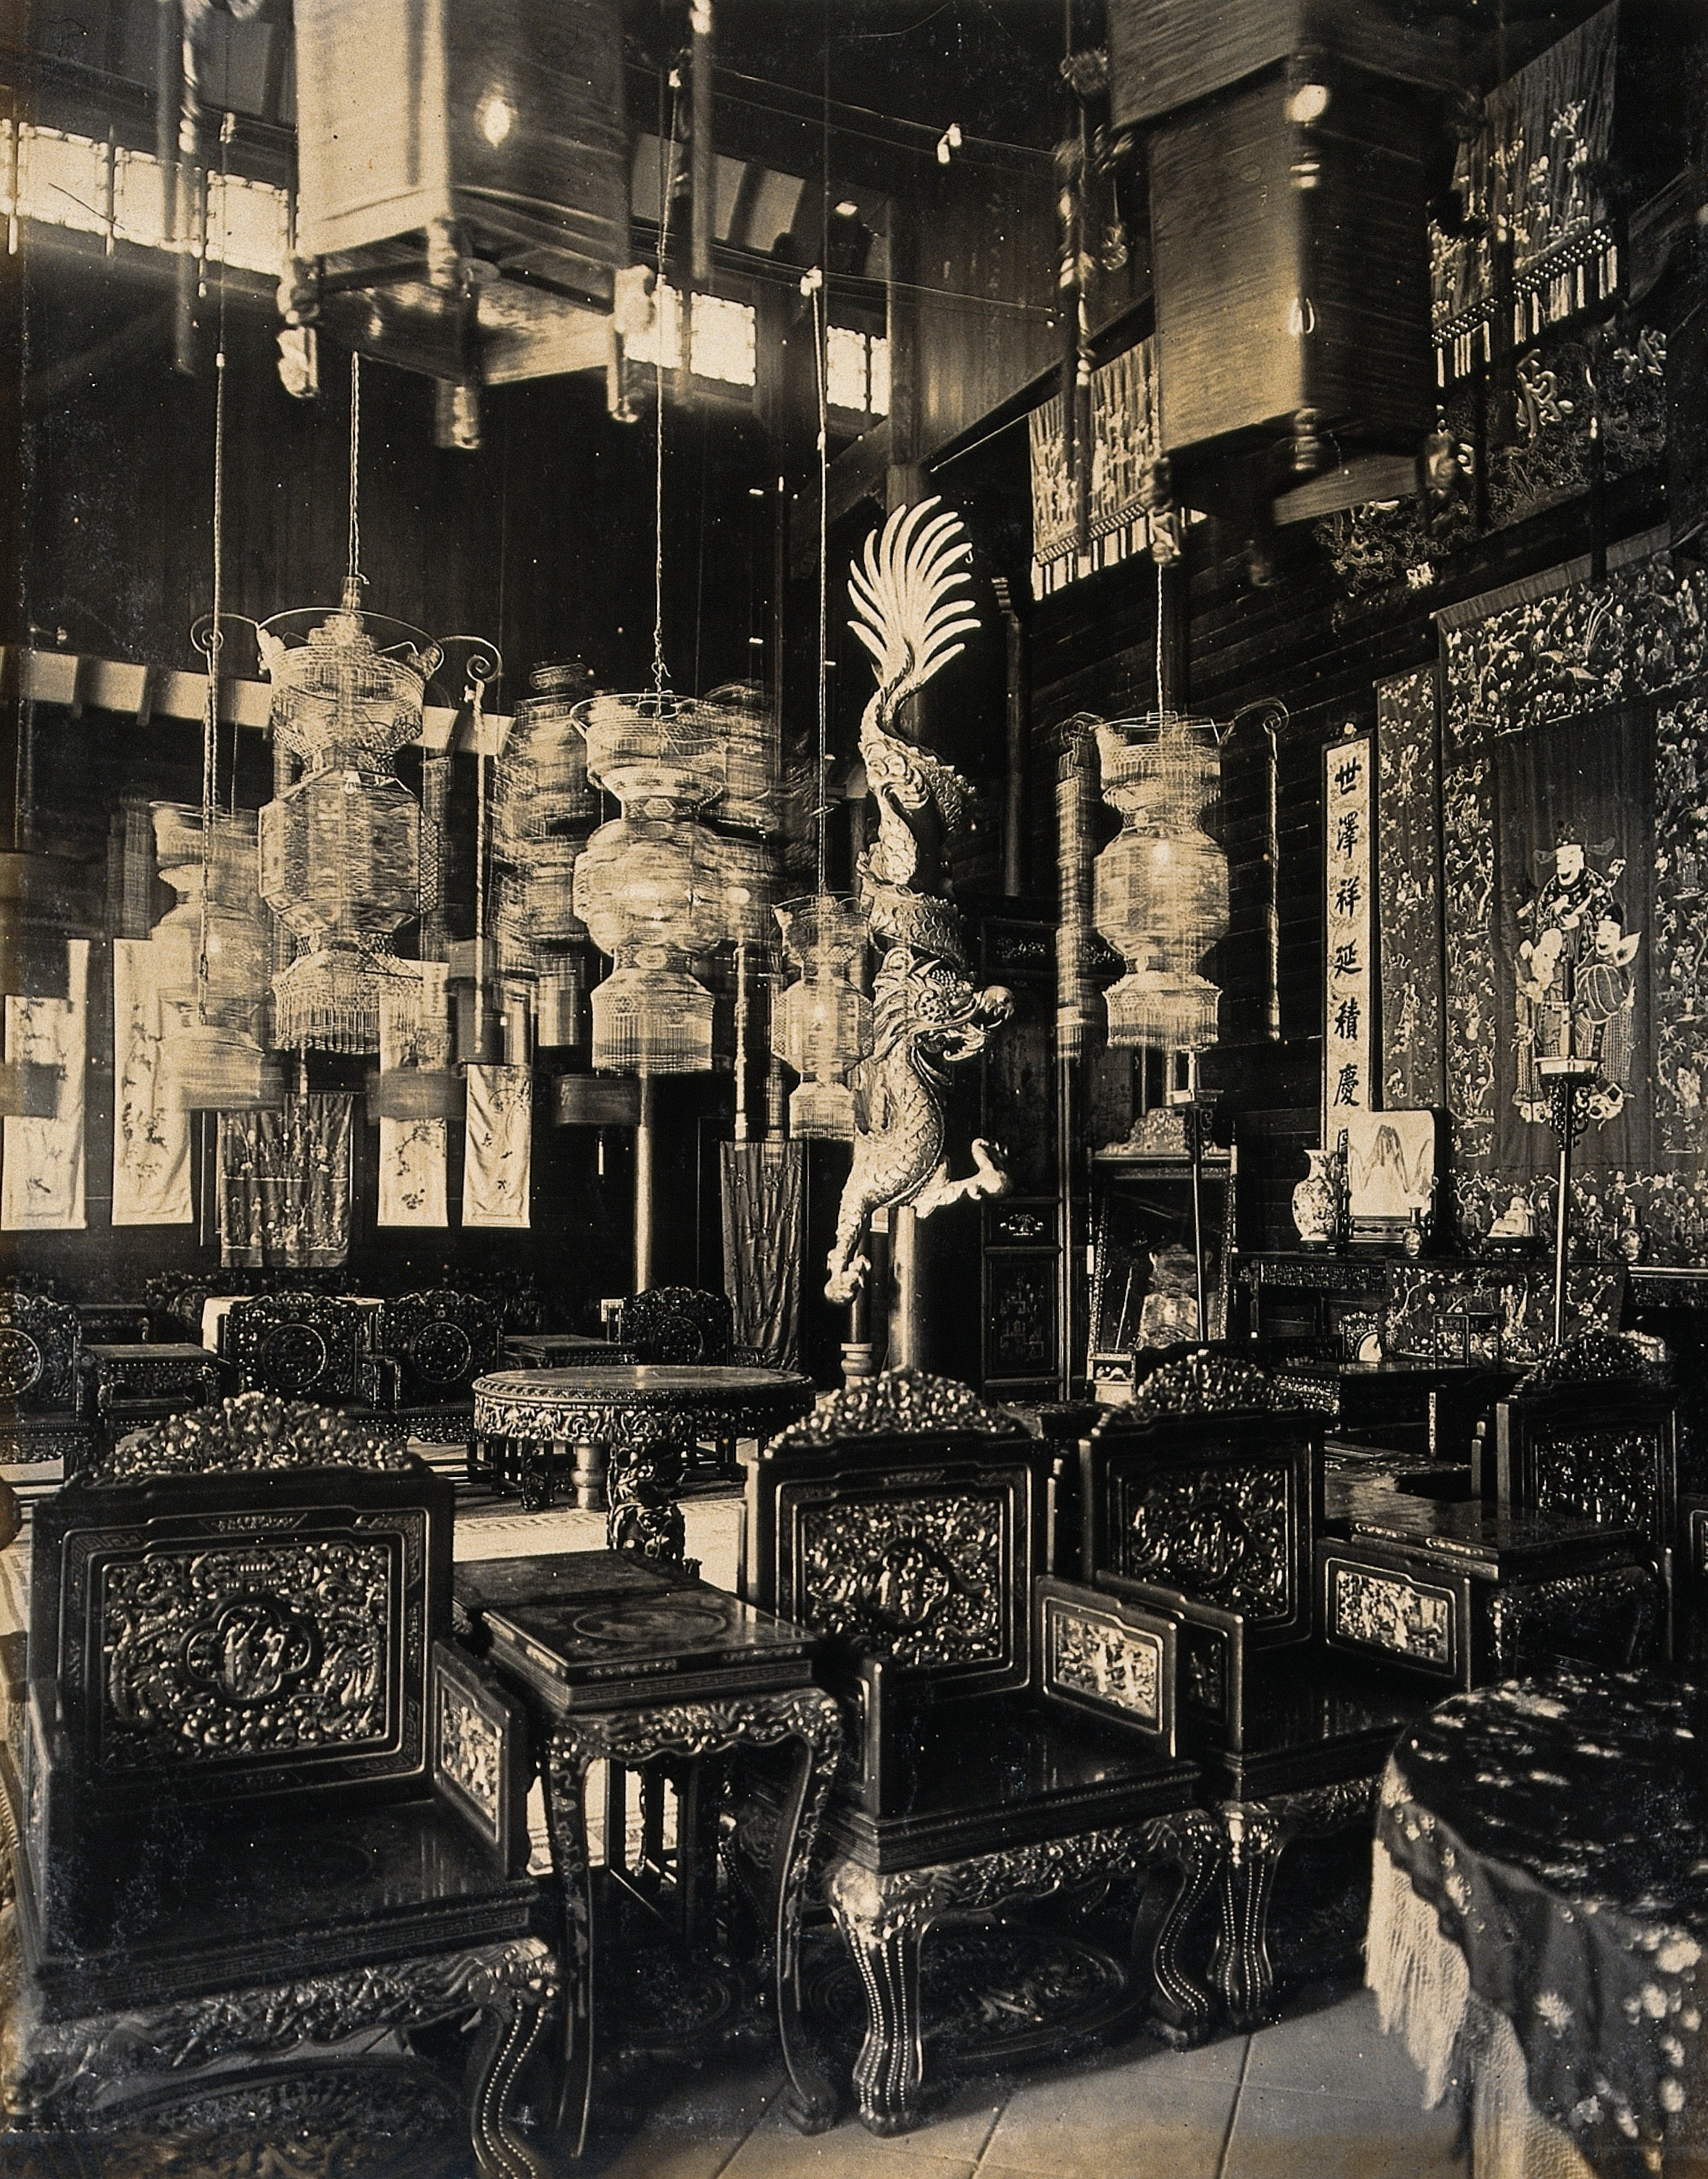 FileChinese Interior Design At The 1904 Worlds Fair St Louis Wellcome V0038344